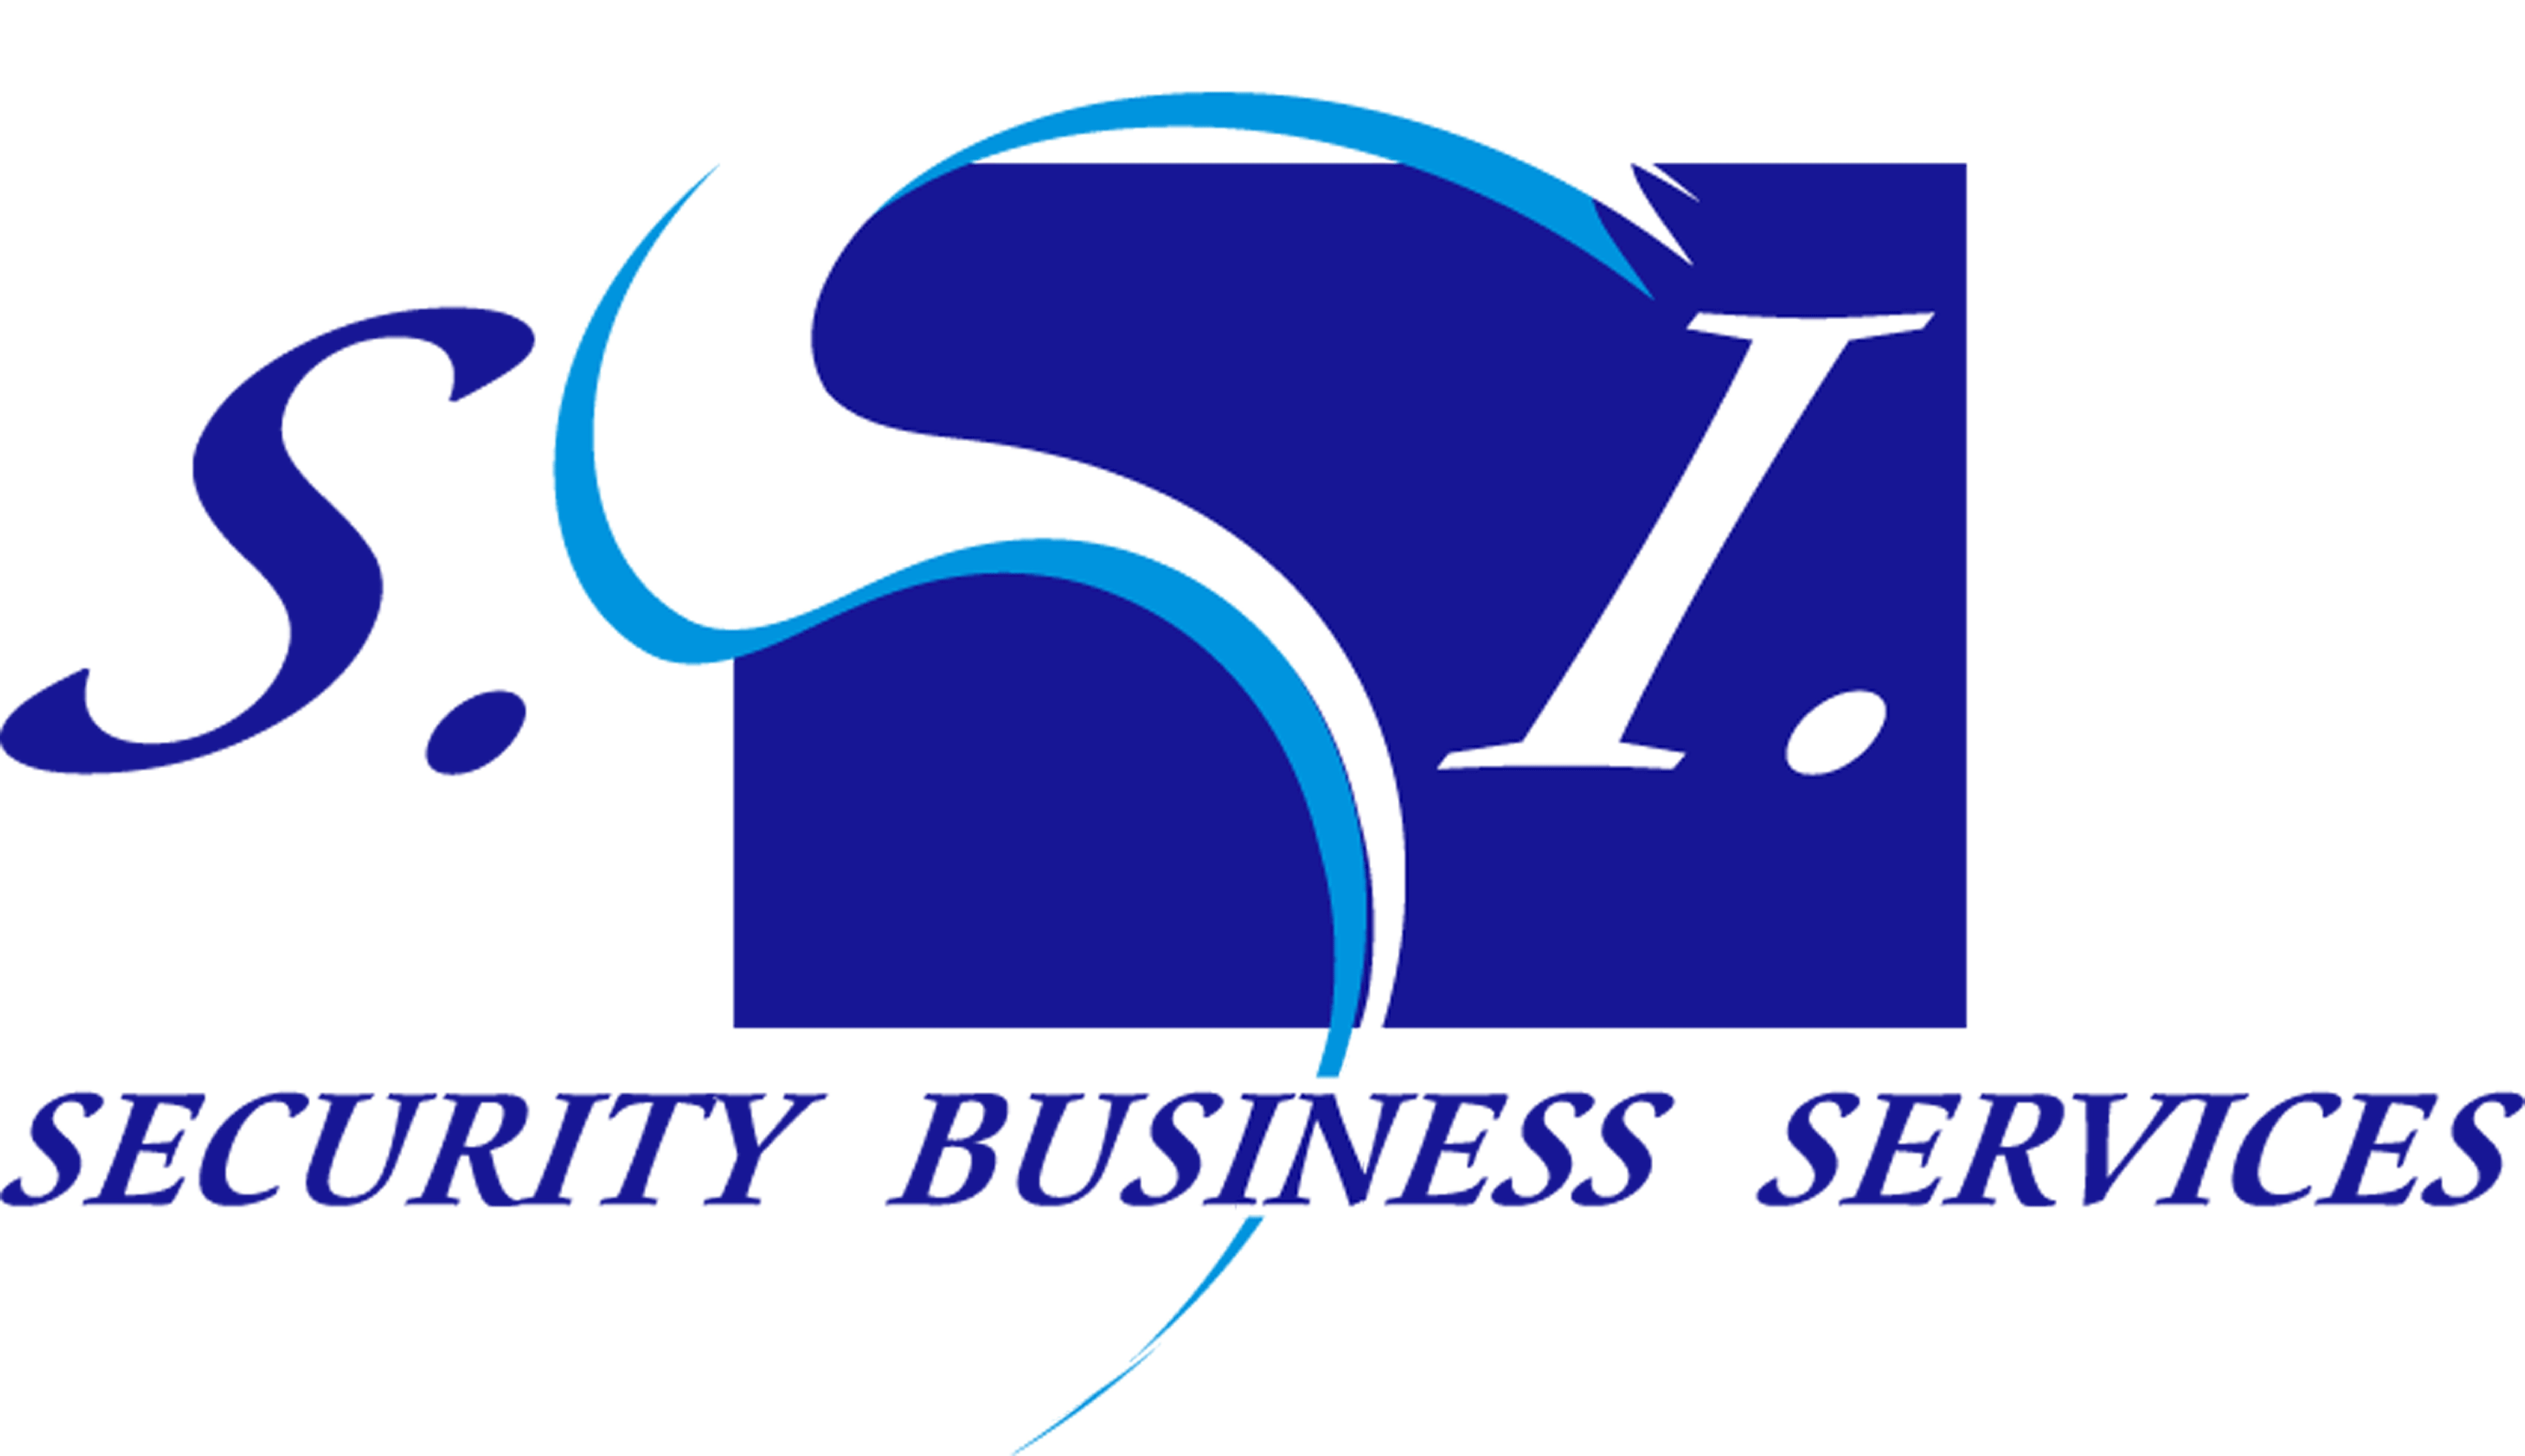 SECURITY BUSINESS SERVICES - Your Global Security provider